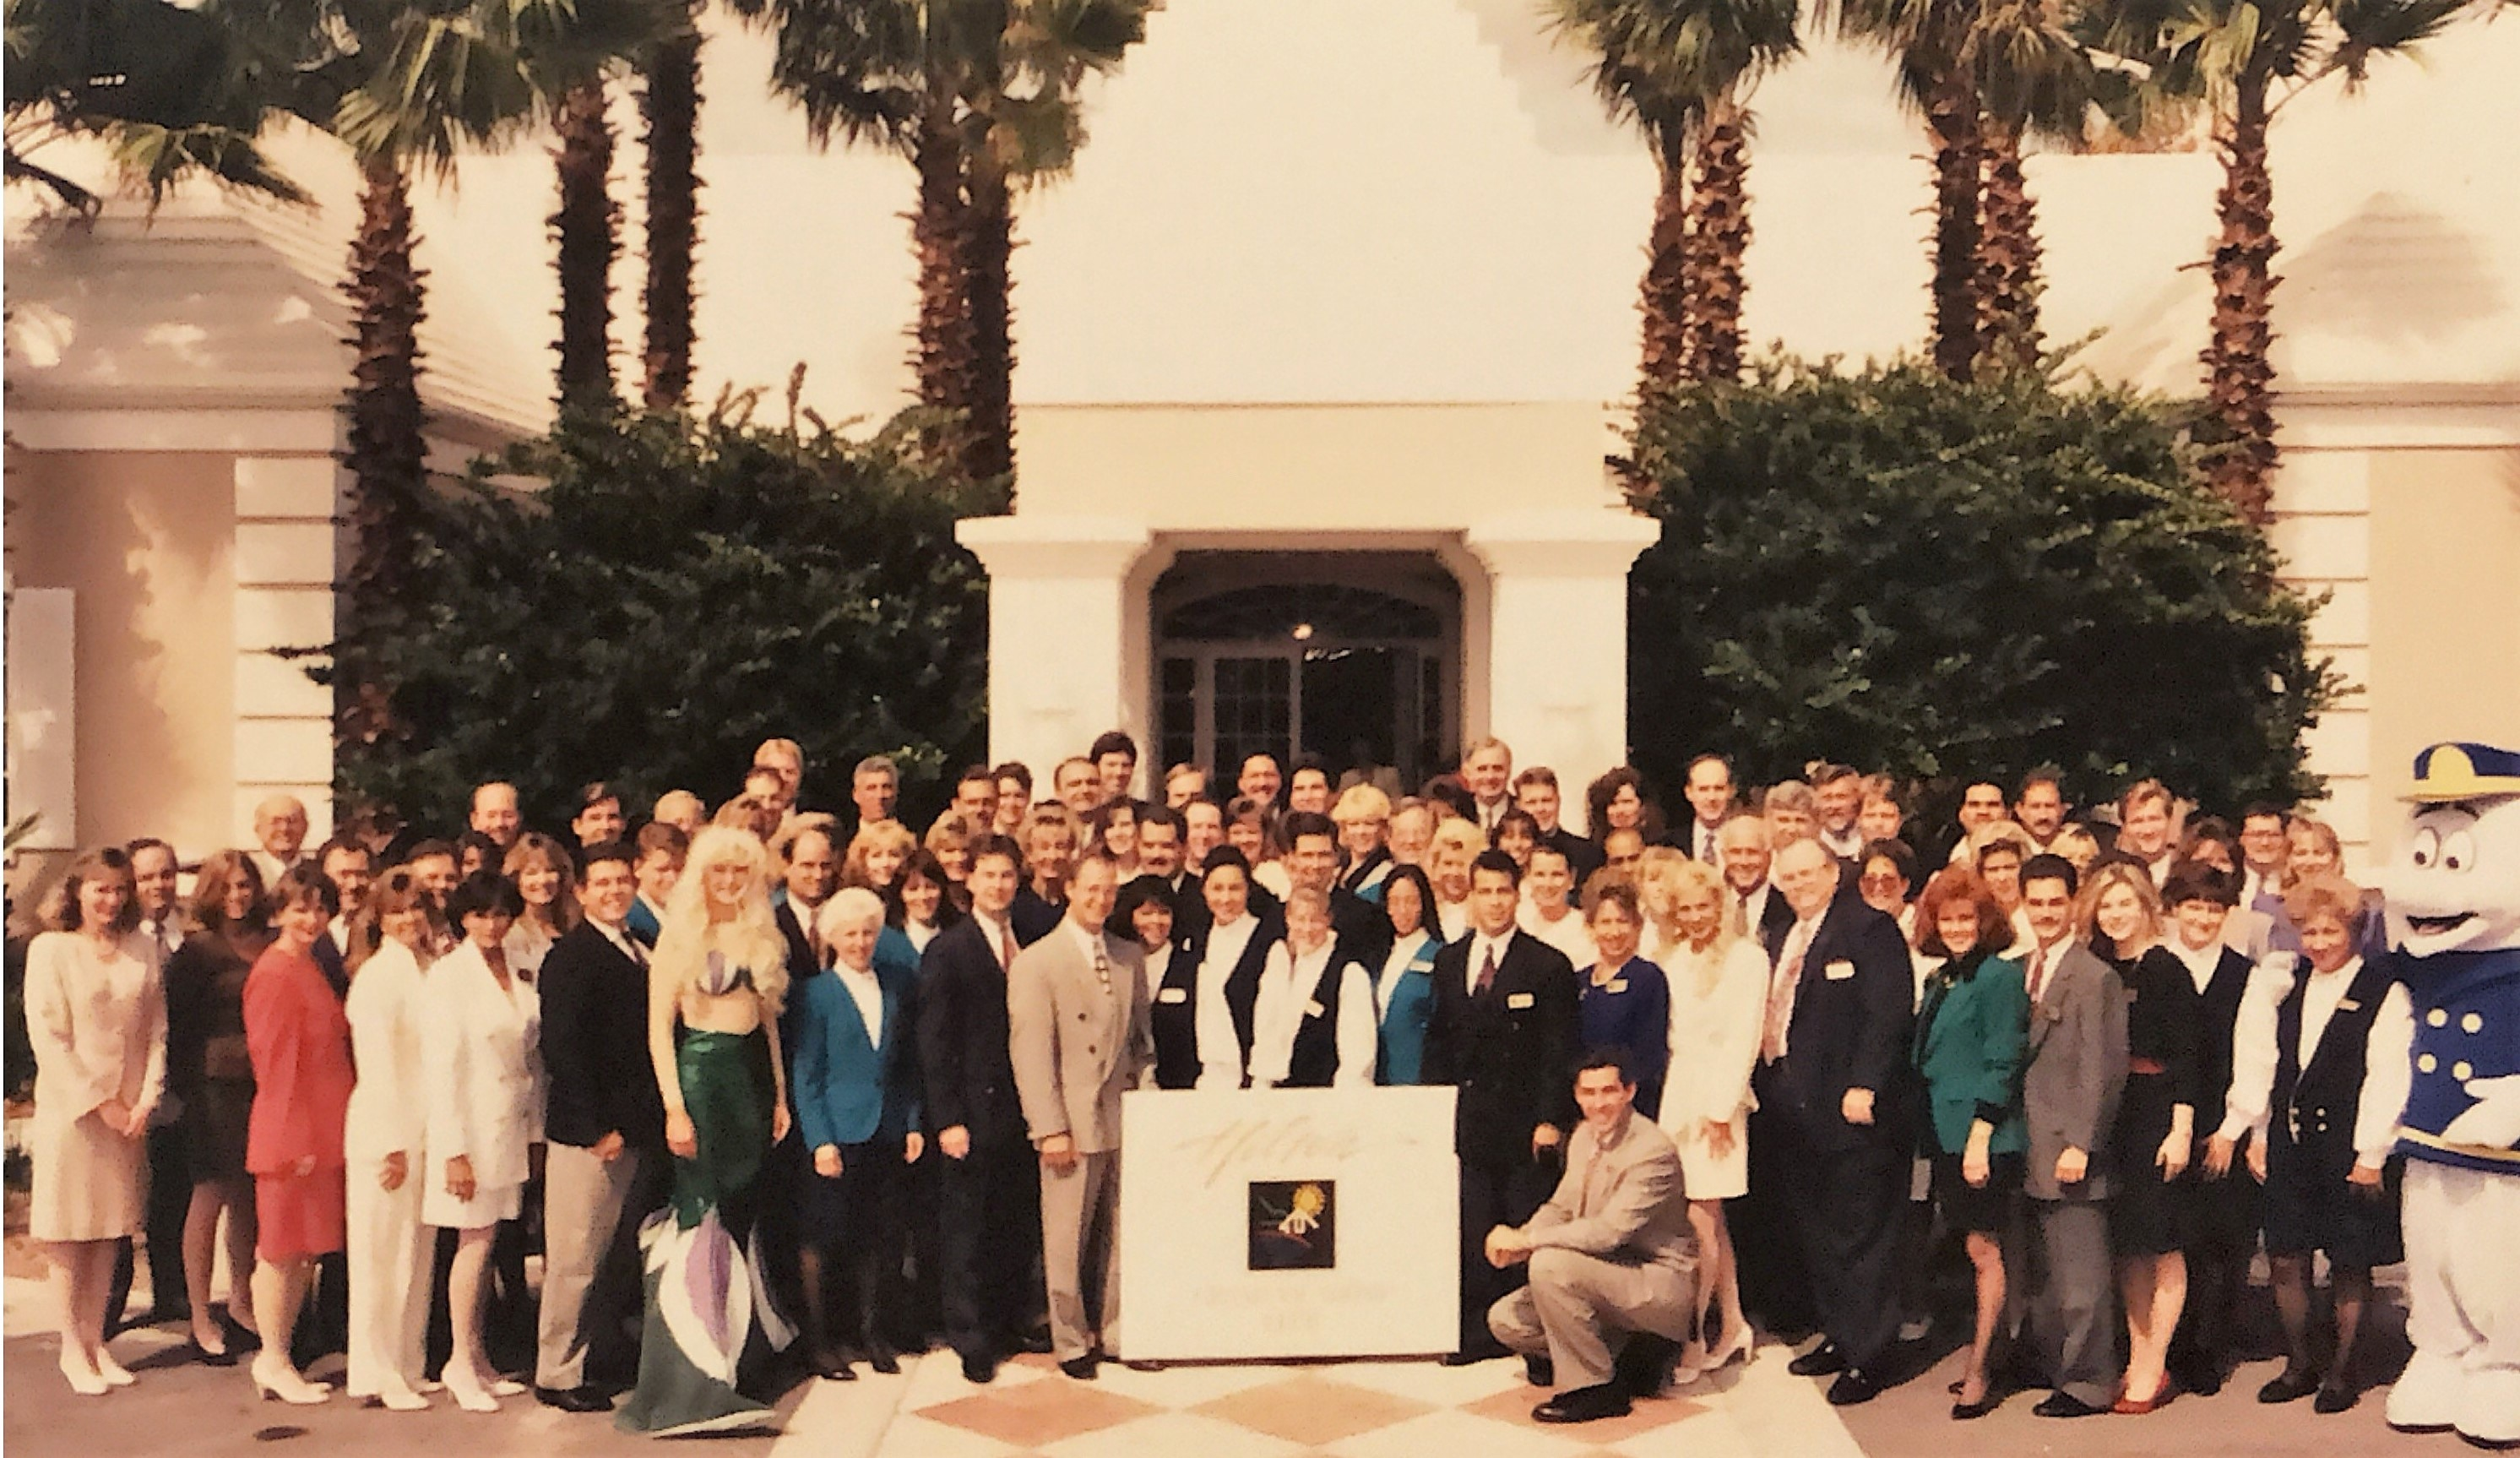 Hilton Grand Vacations at SeaWorld team on opening day in 1995 in Orlando, Florida.